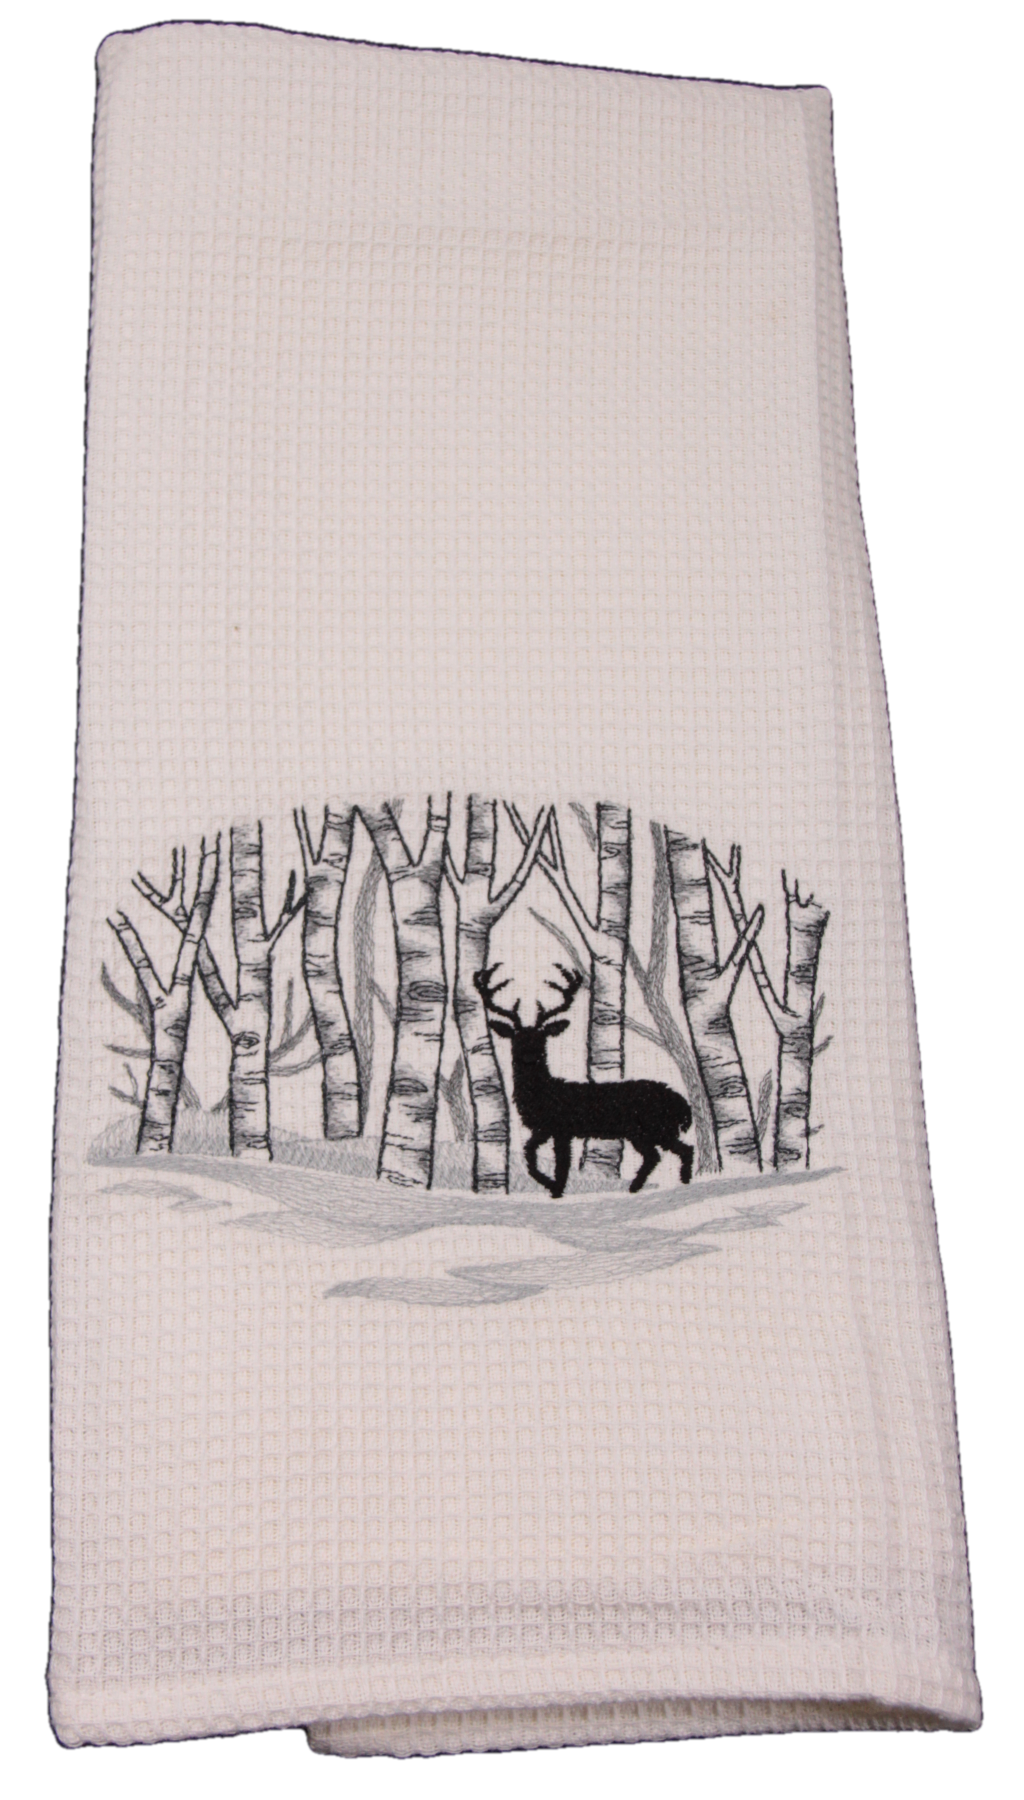 Embroidered White Waffle Weave Dish Towel - Deer in the Woods